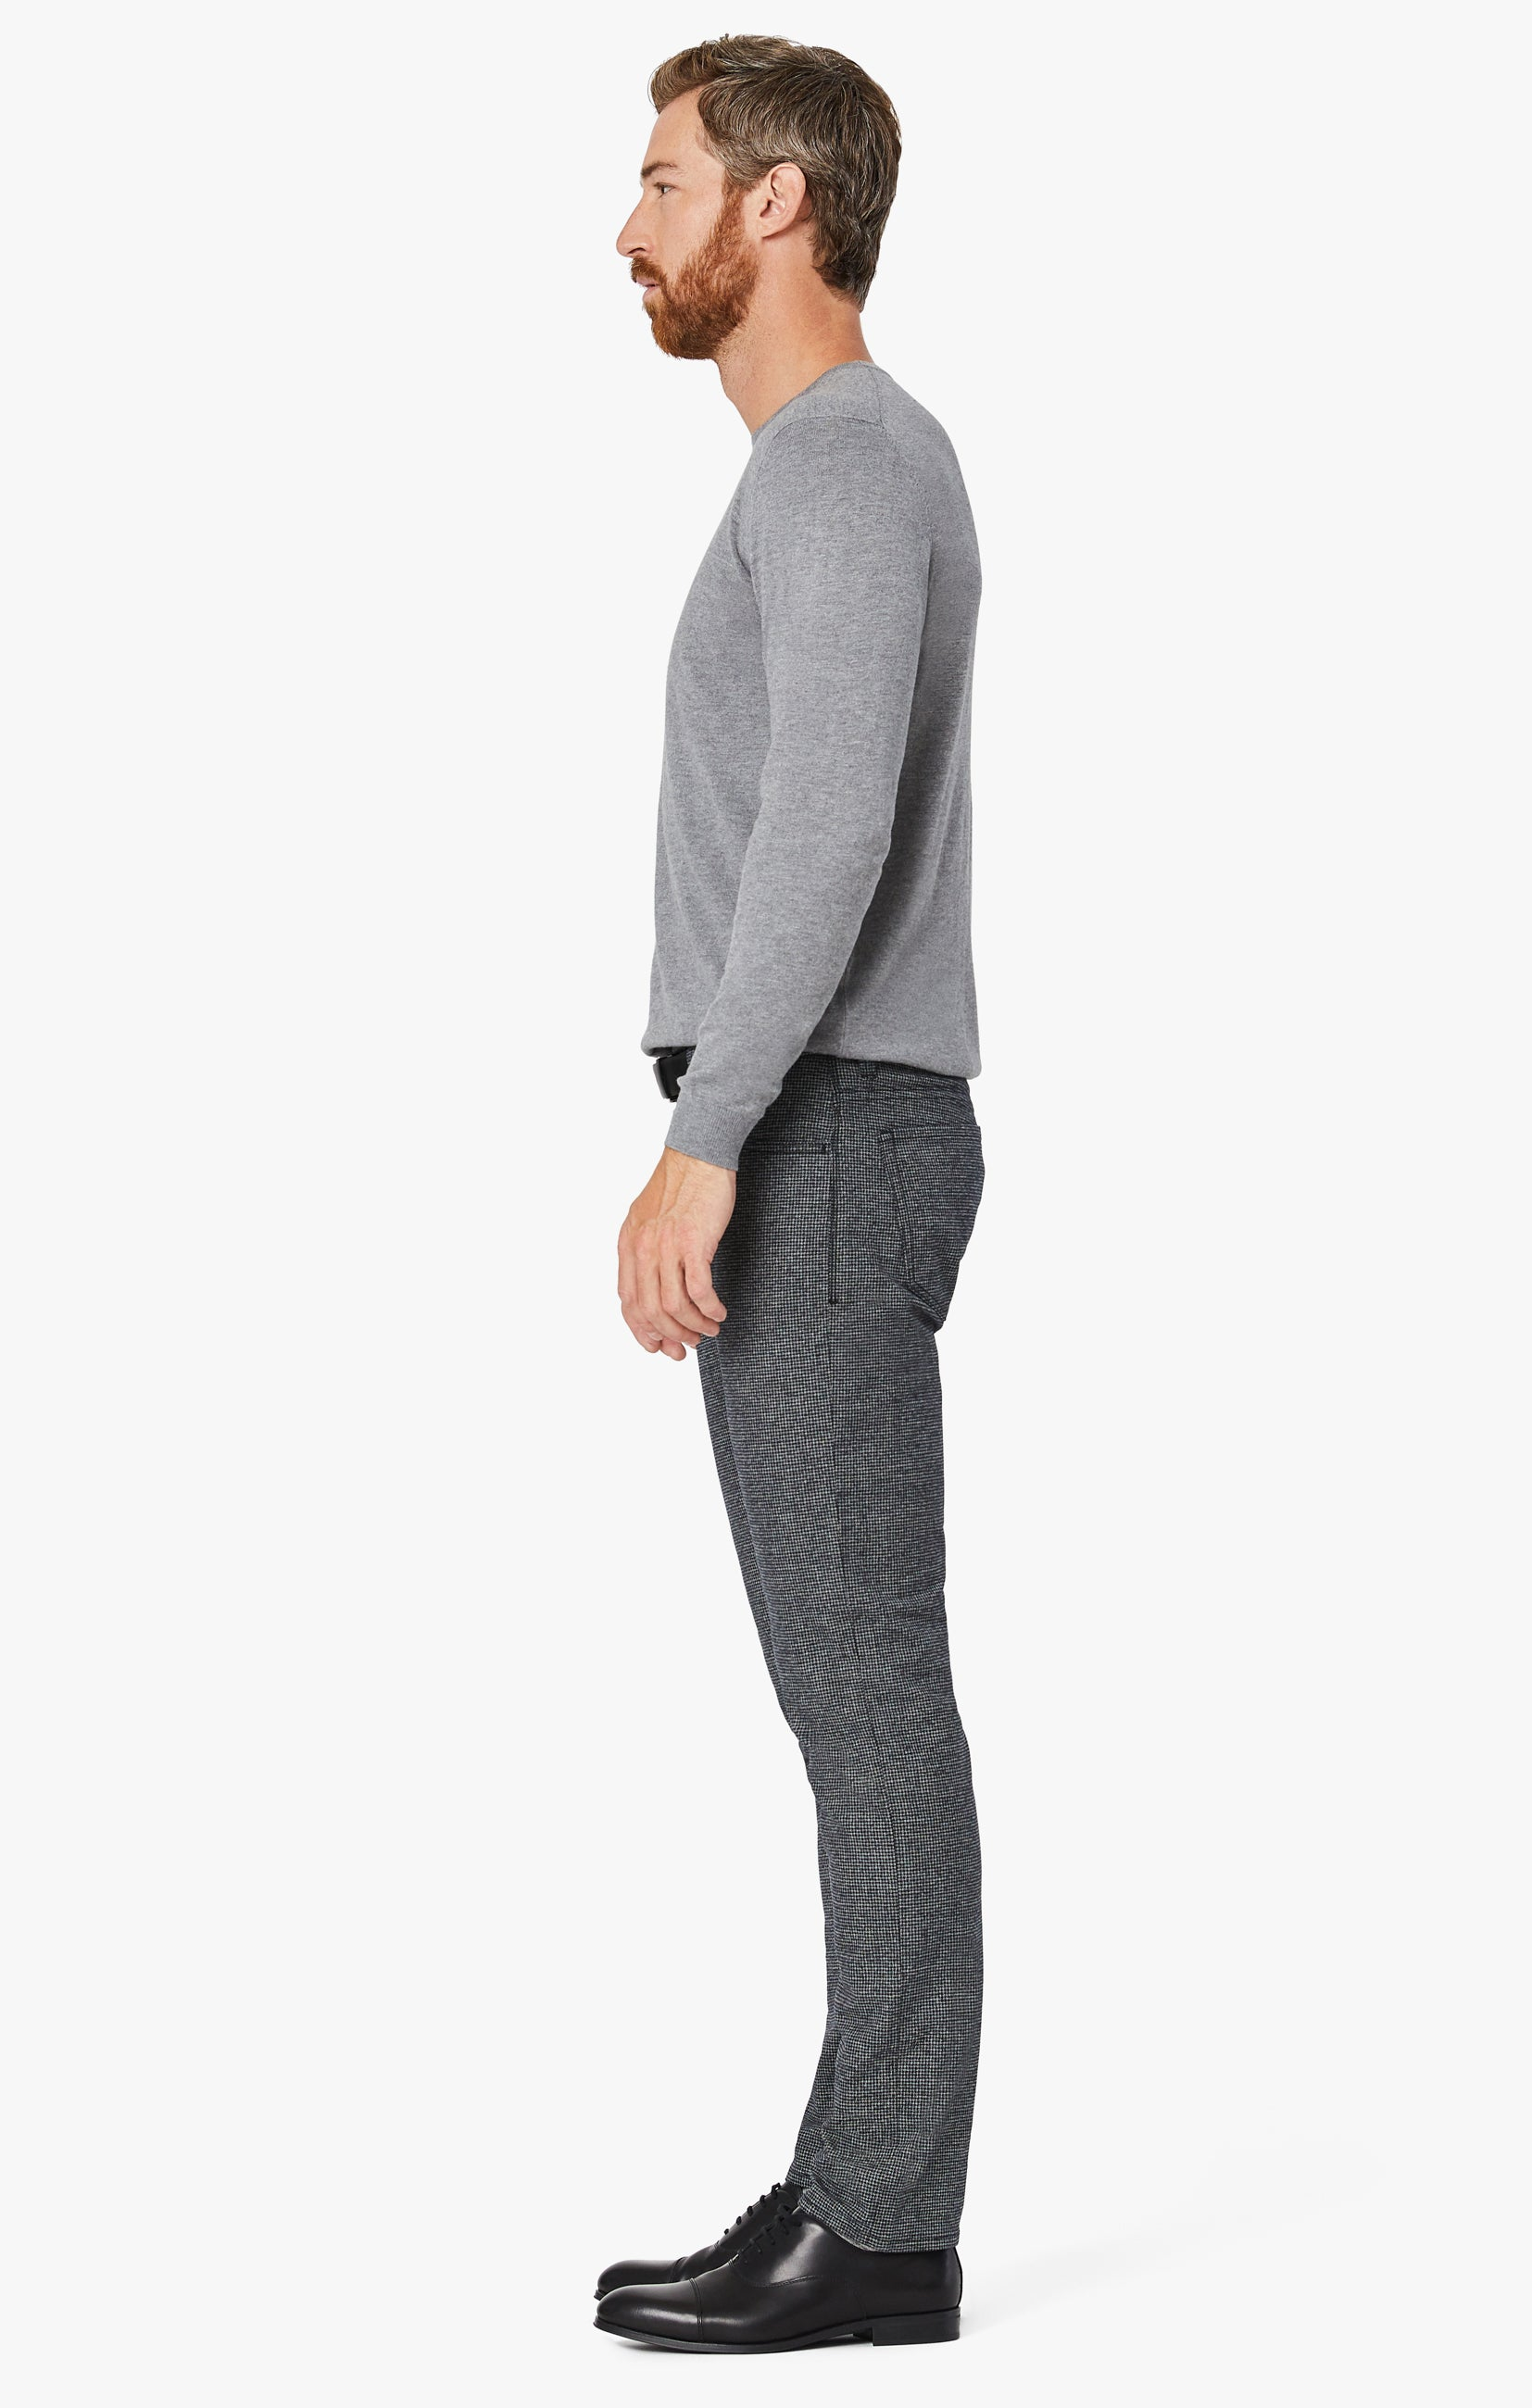 Courage Straight Leg Pants In Grey Houndstooth Image 5